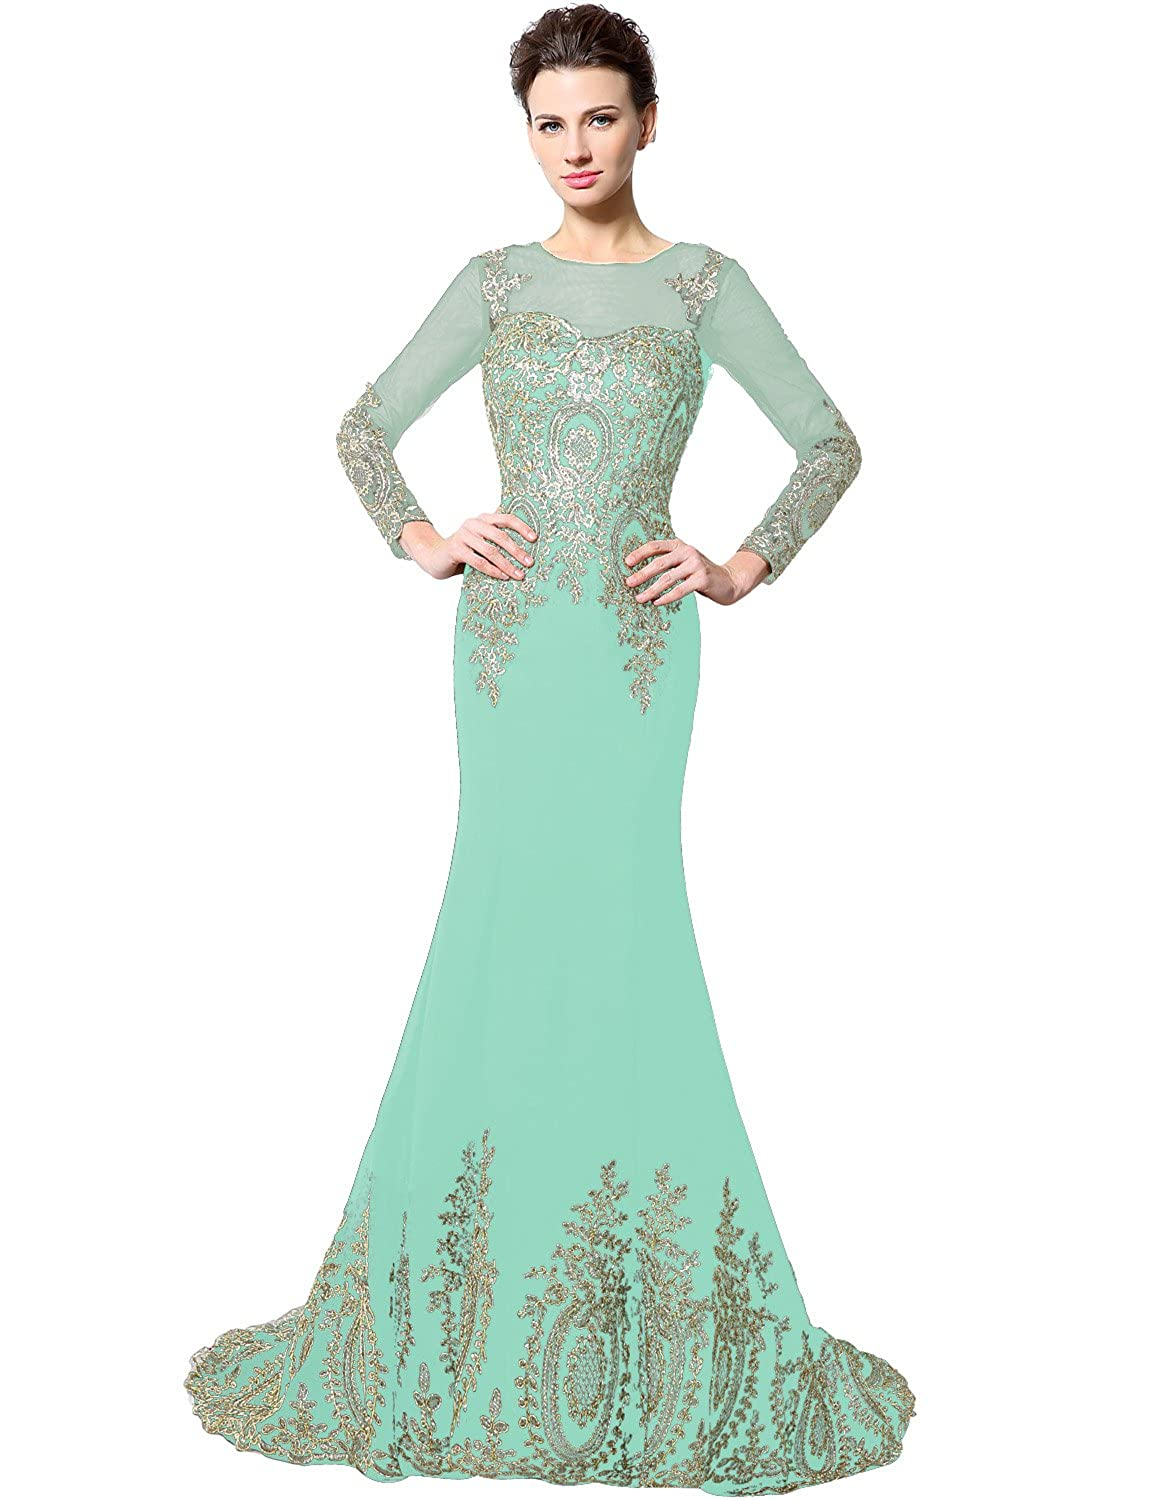 040mint Sarahbridal Women's Mermaid Evening Ball Dress 2019 Formal Long Prom Gowns